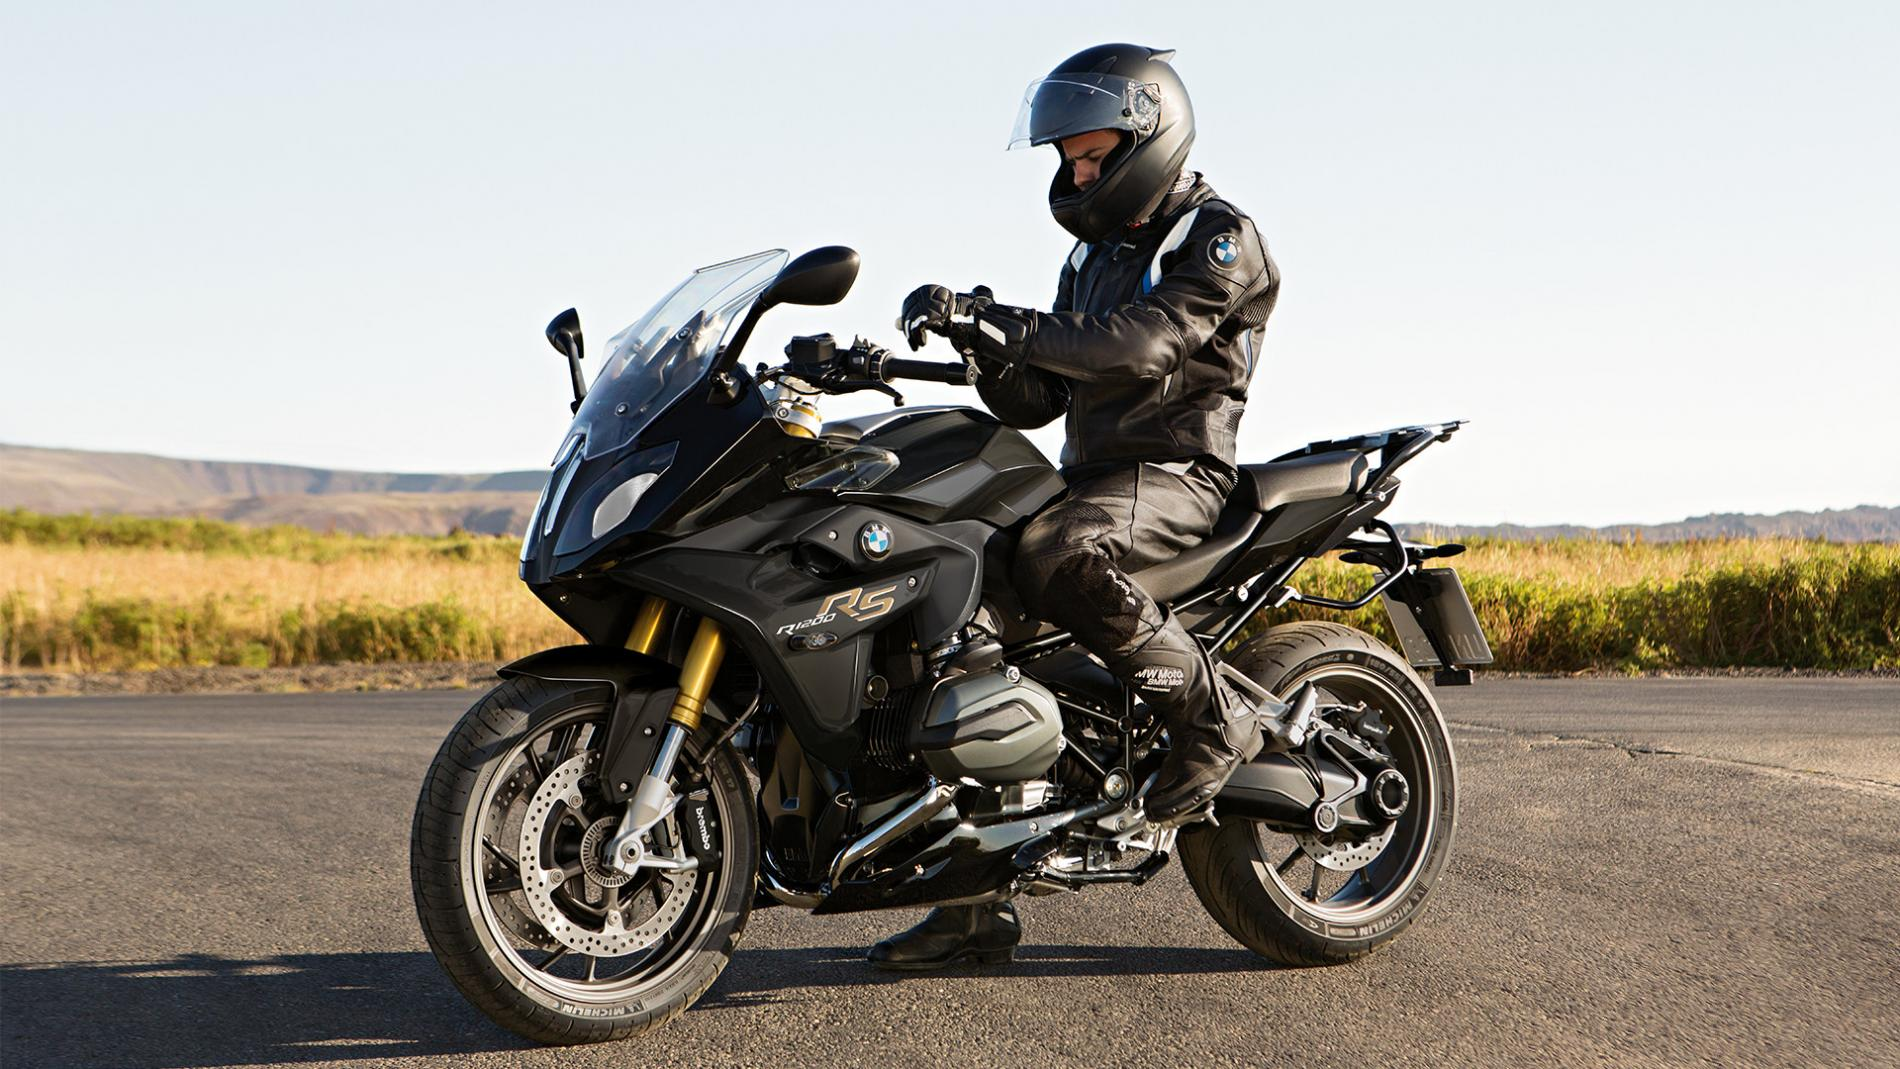 BMW R 1200 RS - medium